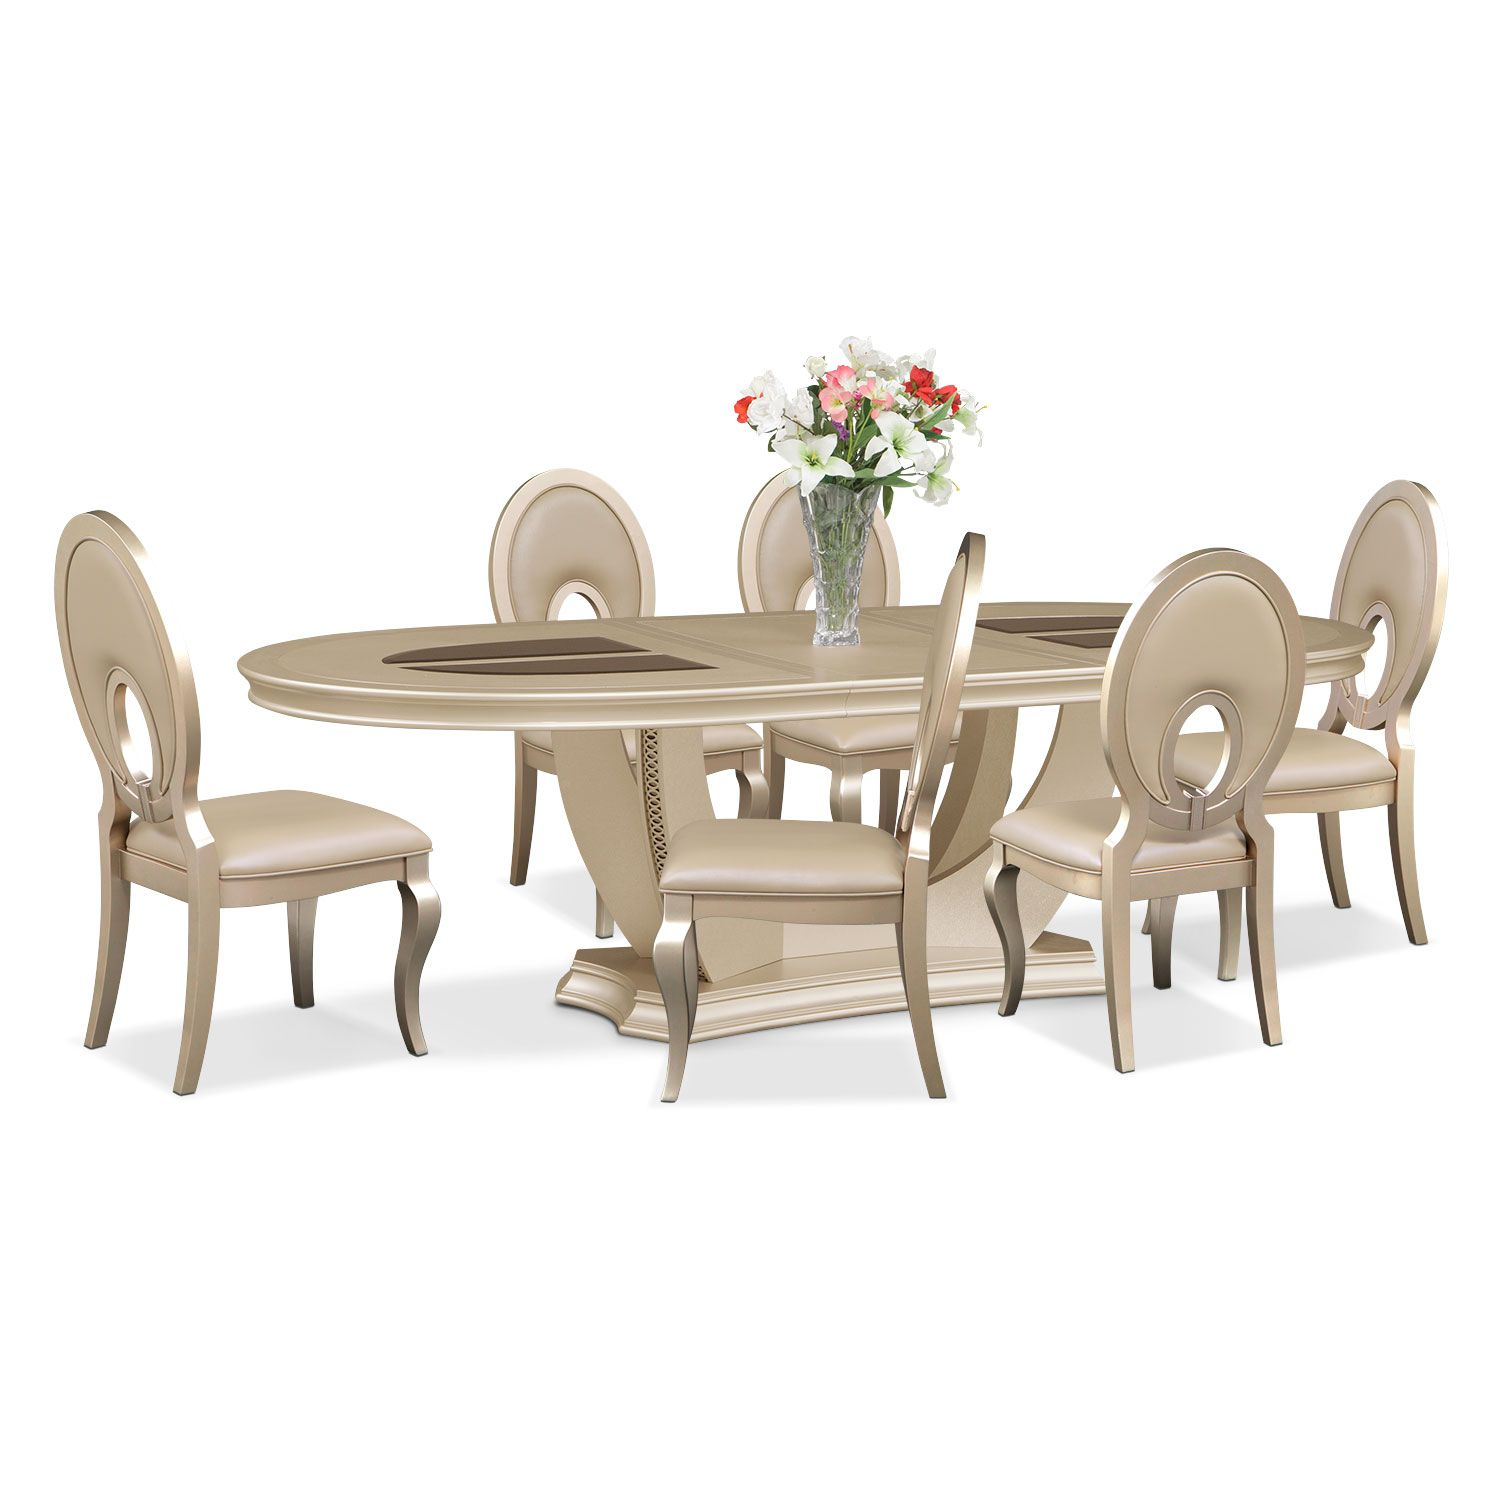 Dining Room Furniture Allegro 7 Pc Dining Room Oval